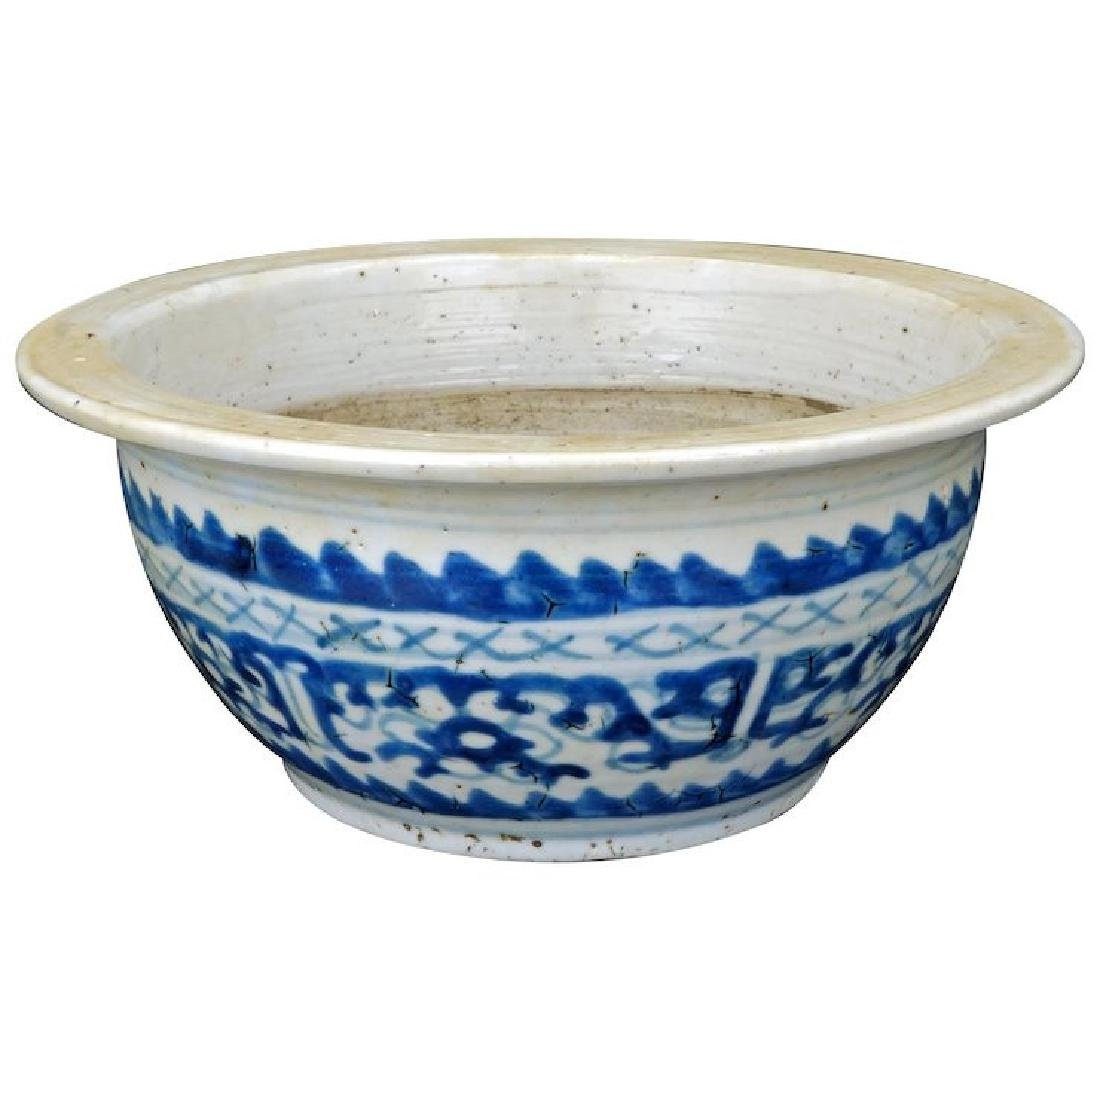 Chinese blue and white porcelain censer bowl with